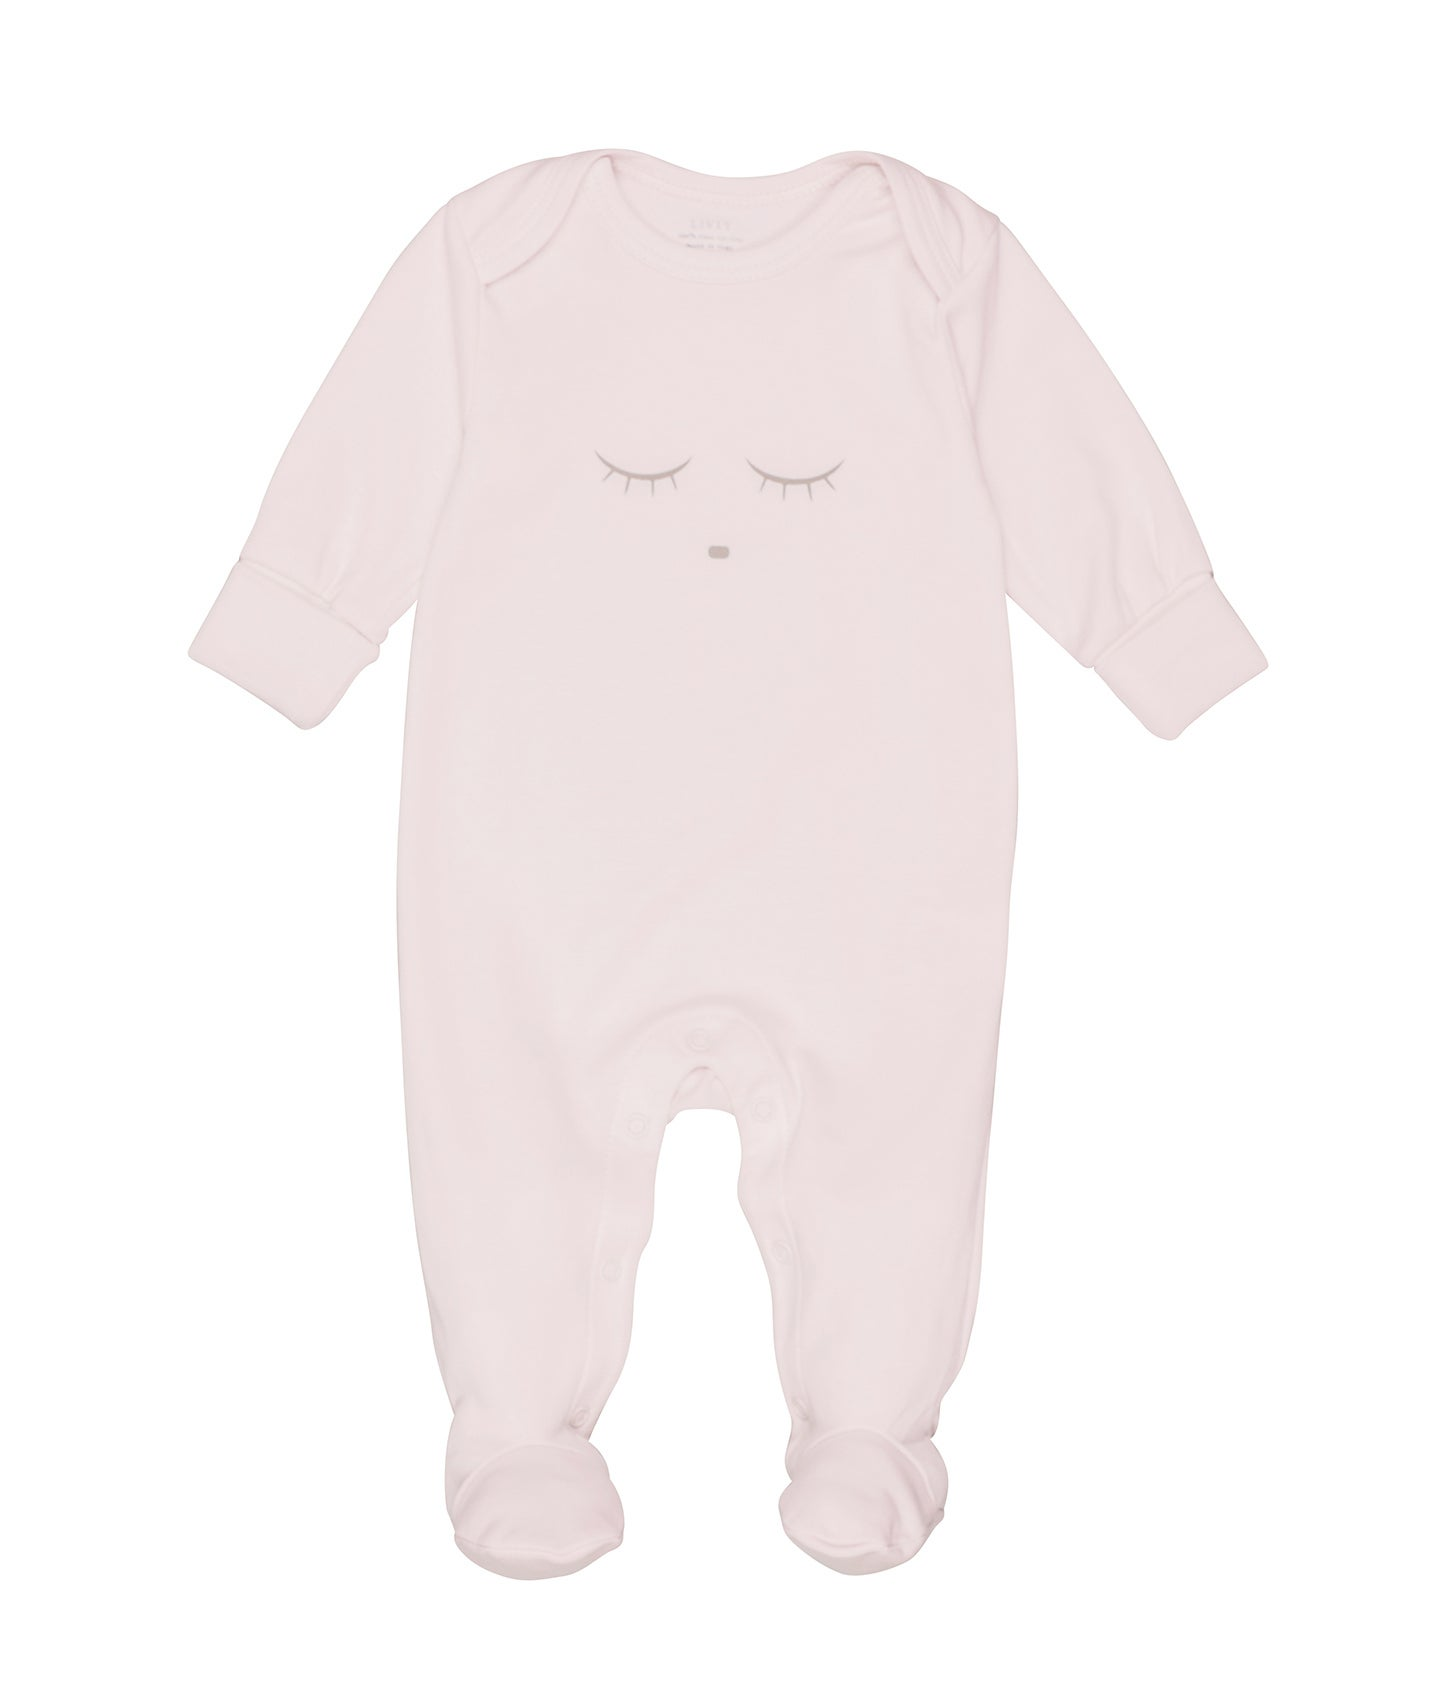 Image of Sleeping Cutie Cover Footie.